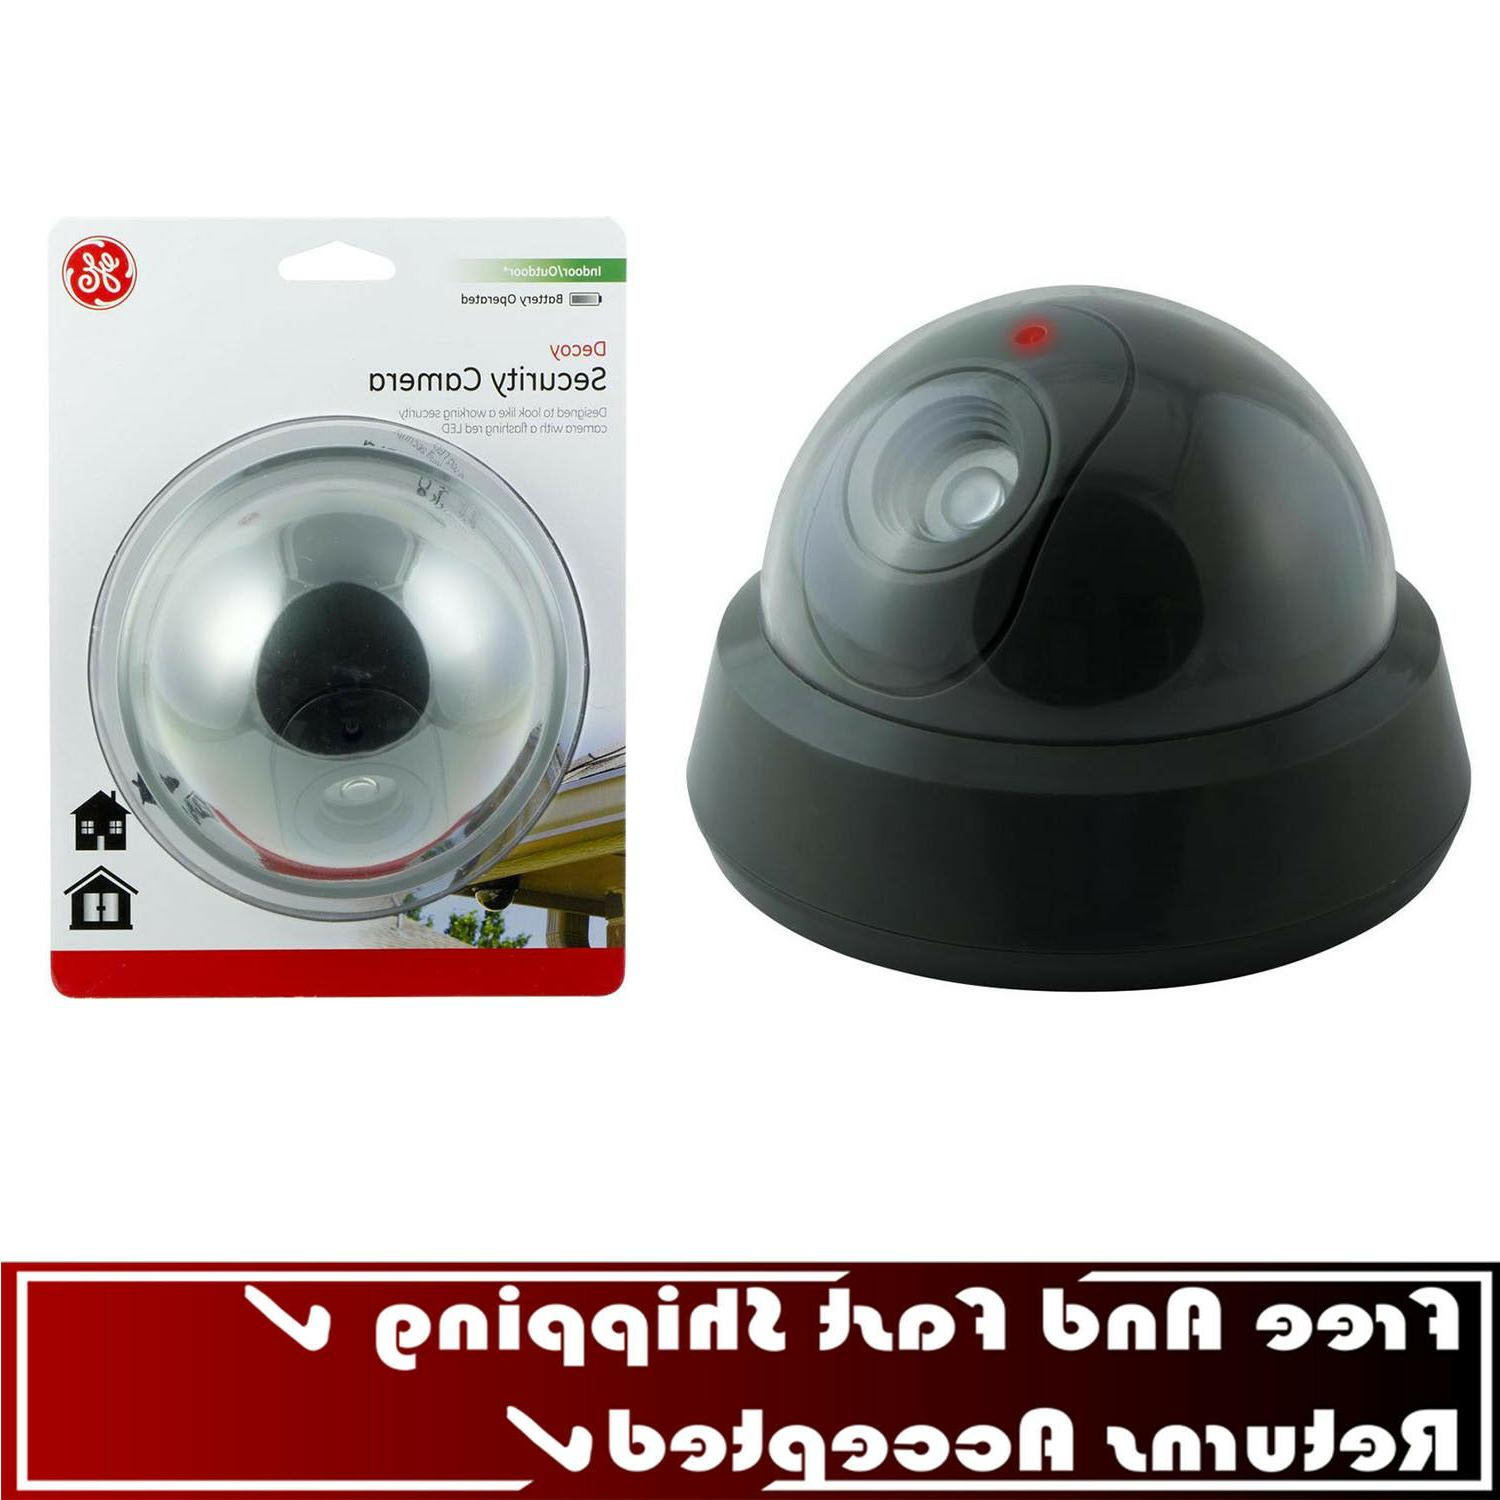 interior exterior simulated security camera home safety